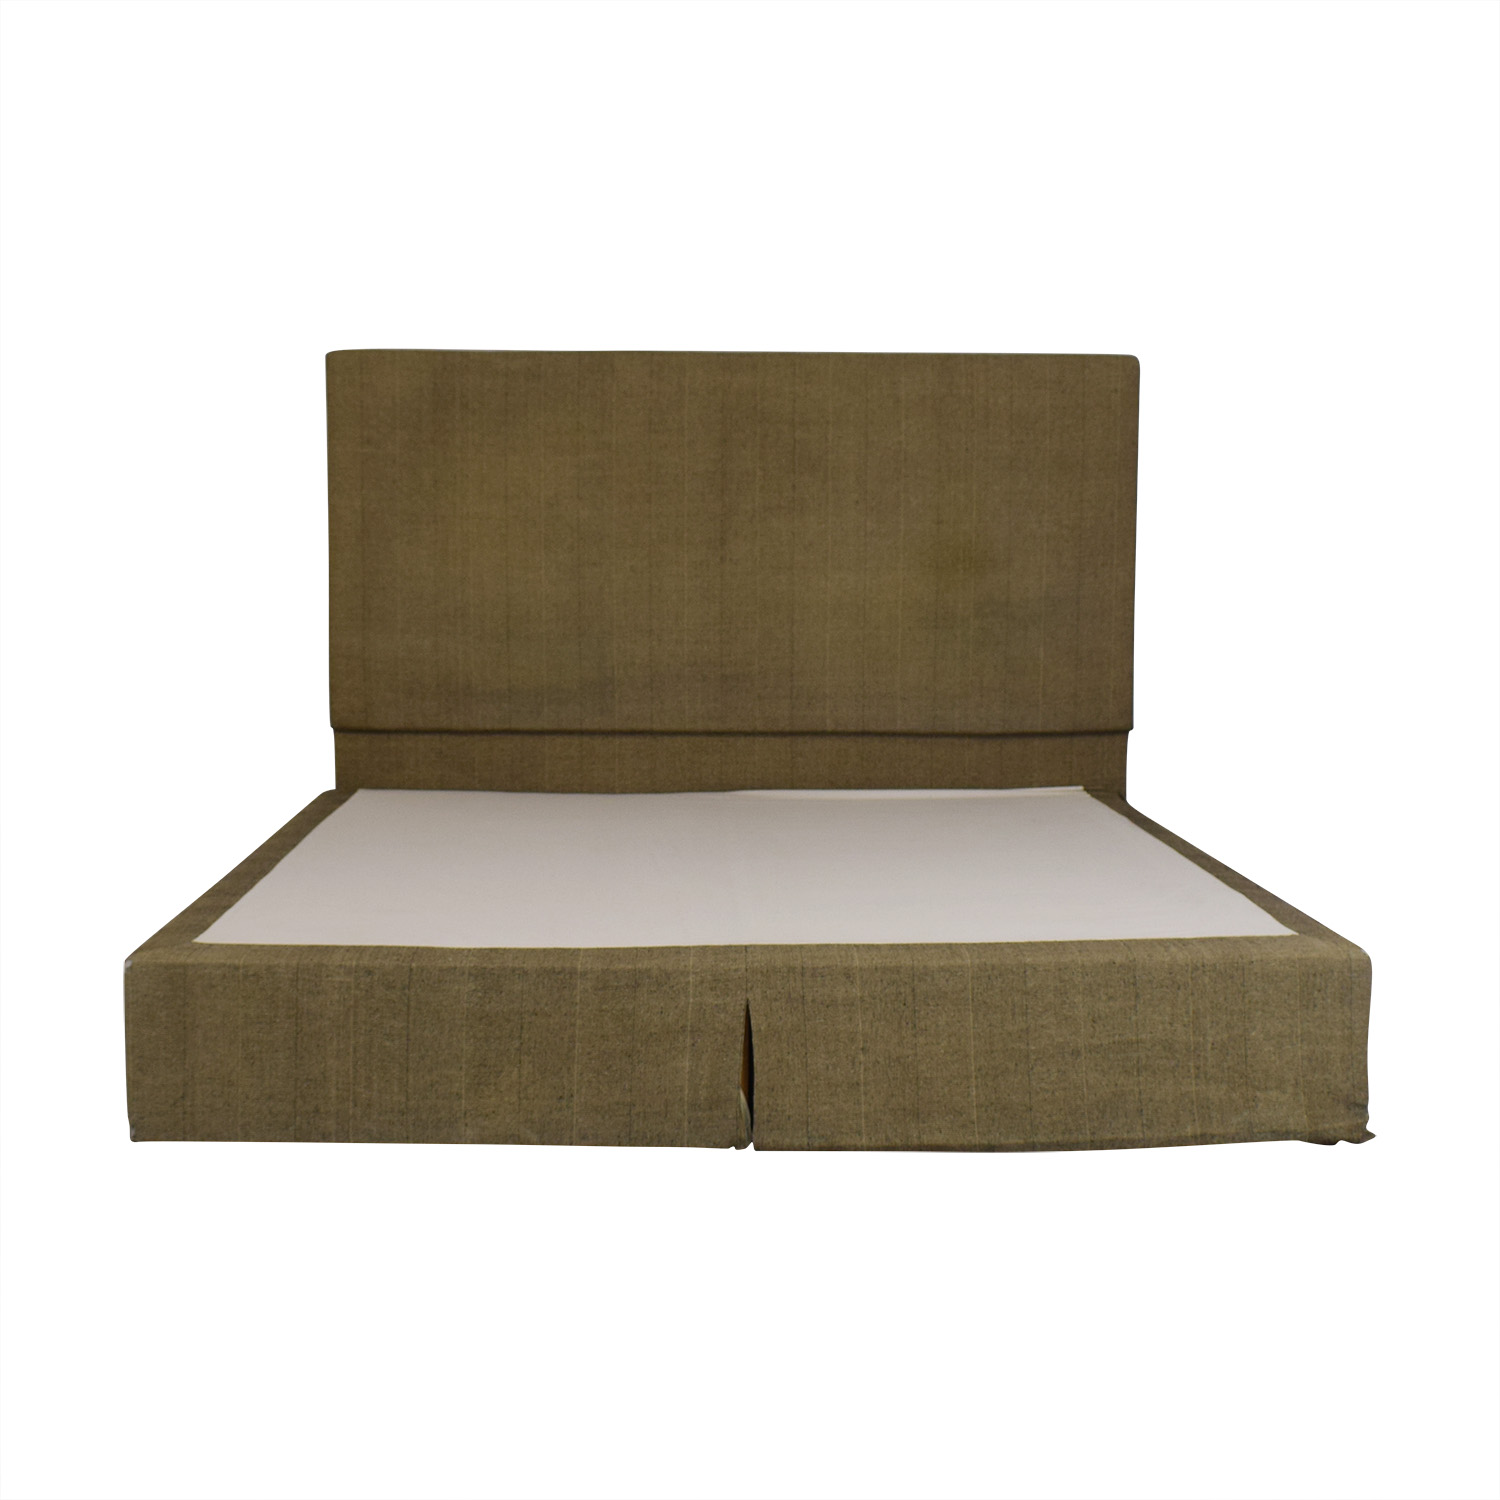 Beige and Black Upholstered Platform King Bed Frame